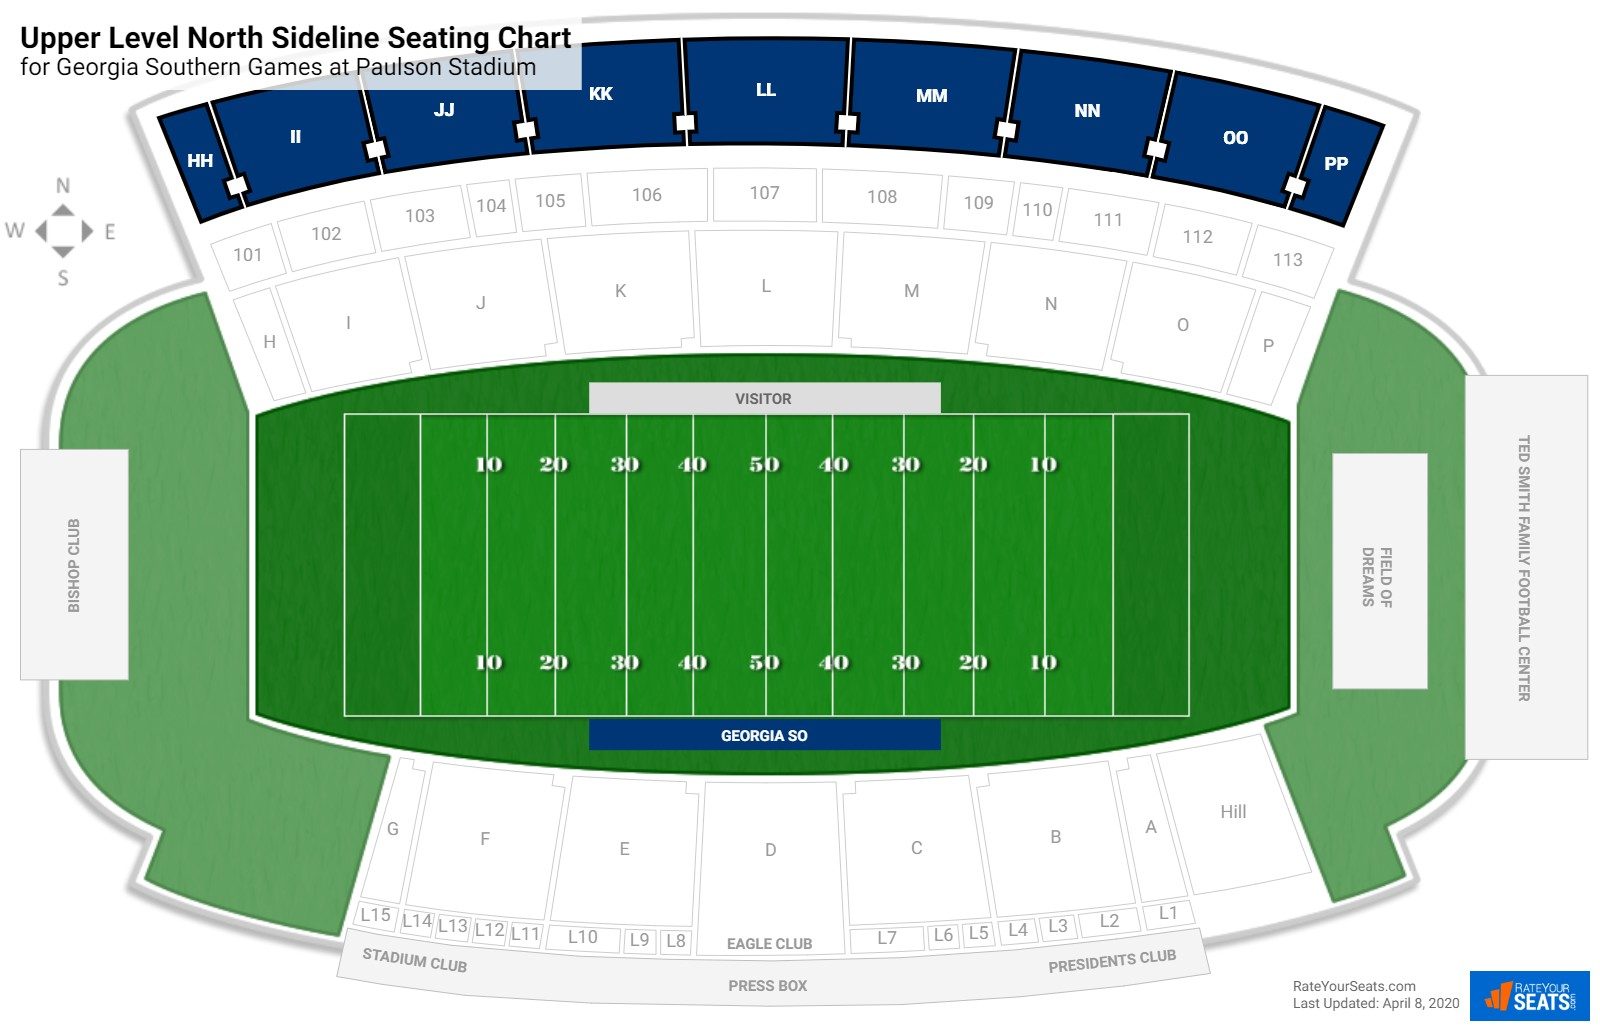 Paulson Stadium Upper Level North Sideline seating chart